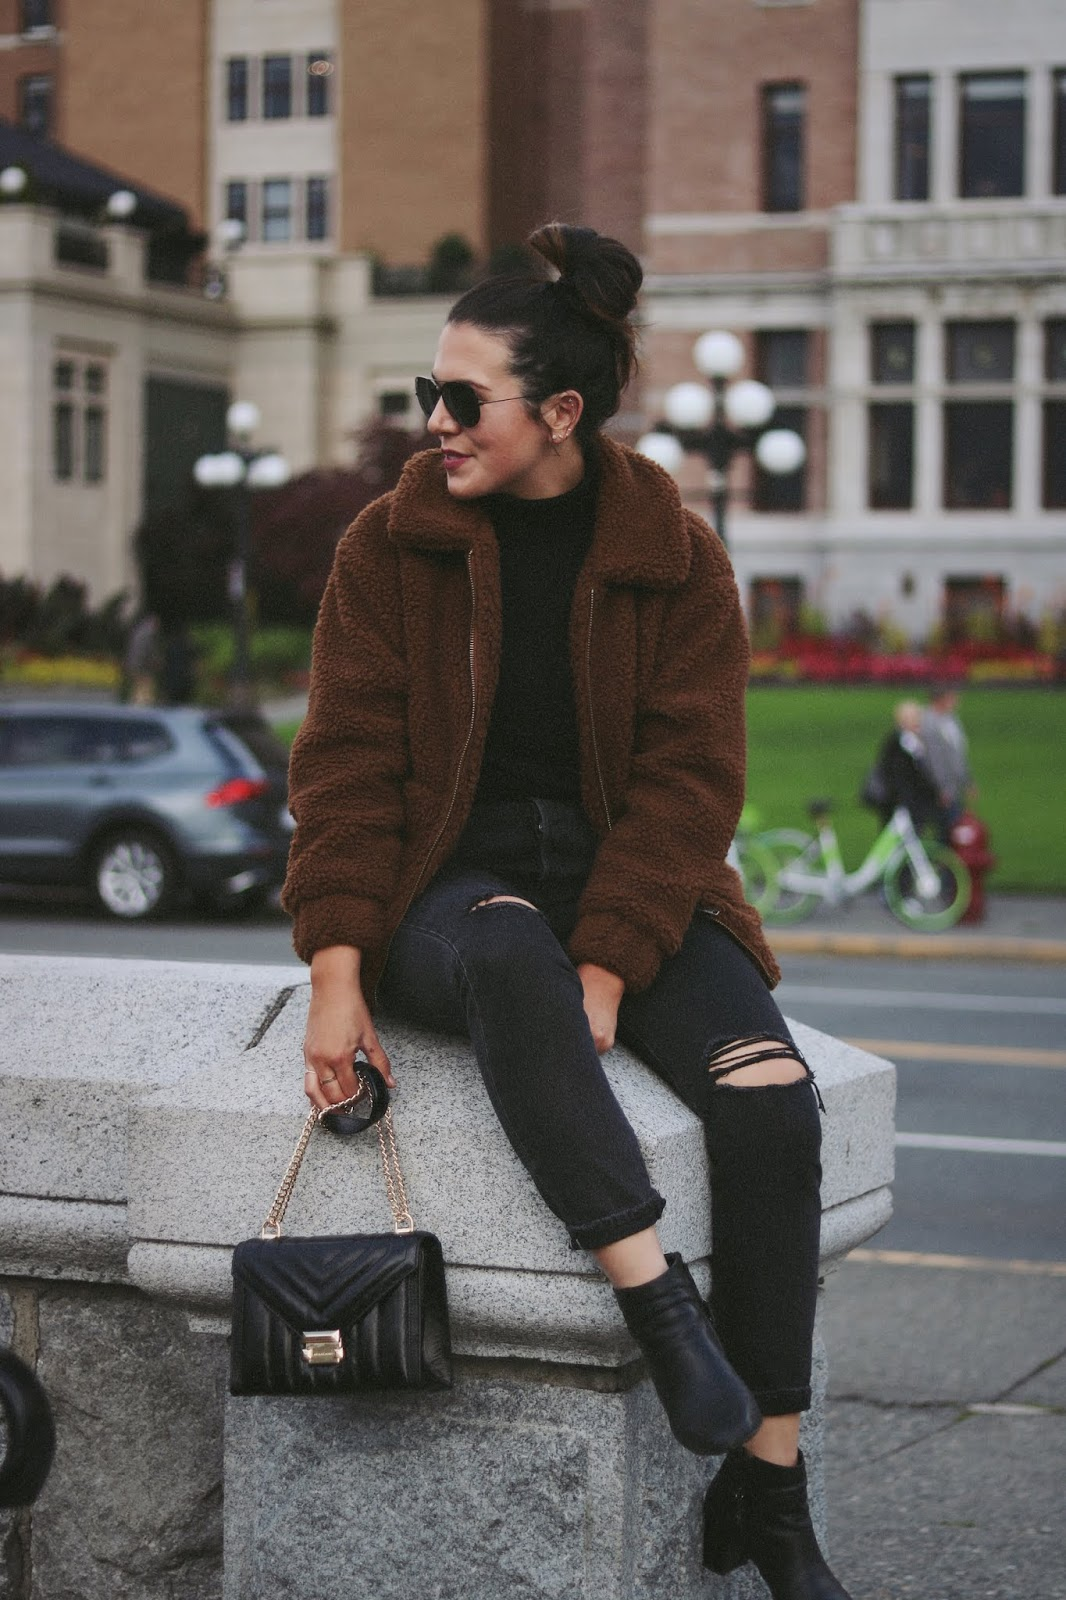 michael kors whitney bag Teddy Bear Coat outfit vancouver fashion blogger garage levis wedgie victoria empress hotel